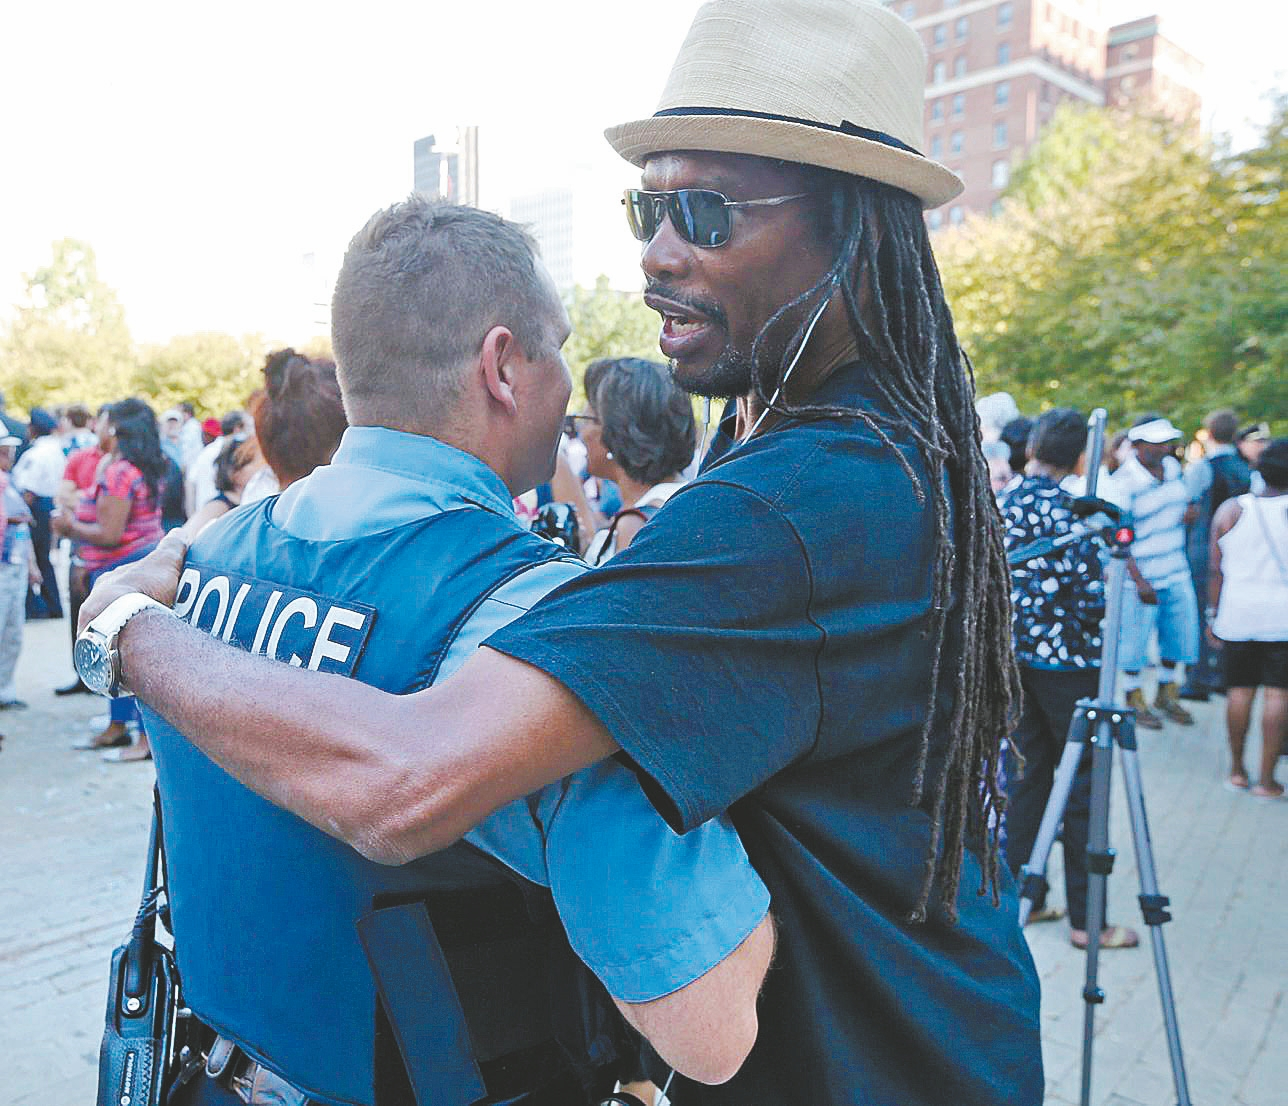 In this moving photo from Tuesday's community rally in Niagara Square, Ron Stewart, a sociology professor at SUNY Buffalo State, right, hugs a former student, Cheektowaga Police Officer Dave Vogel.